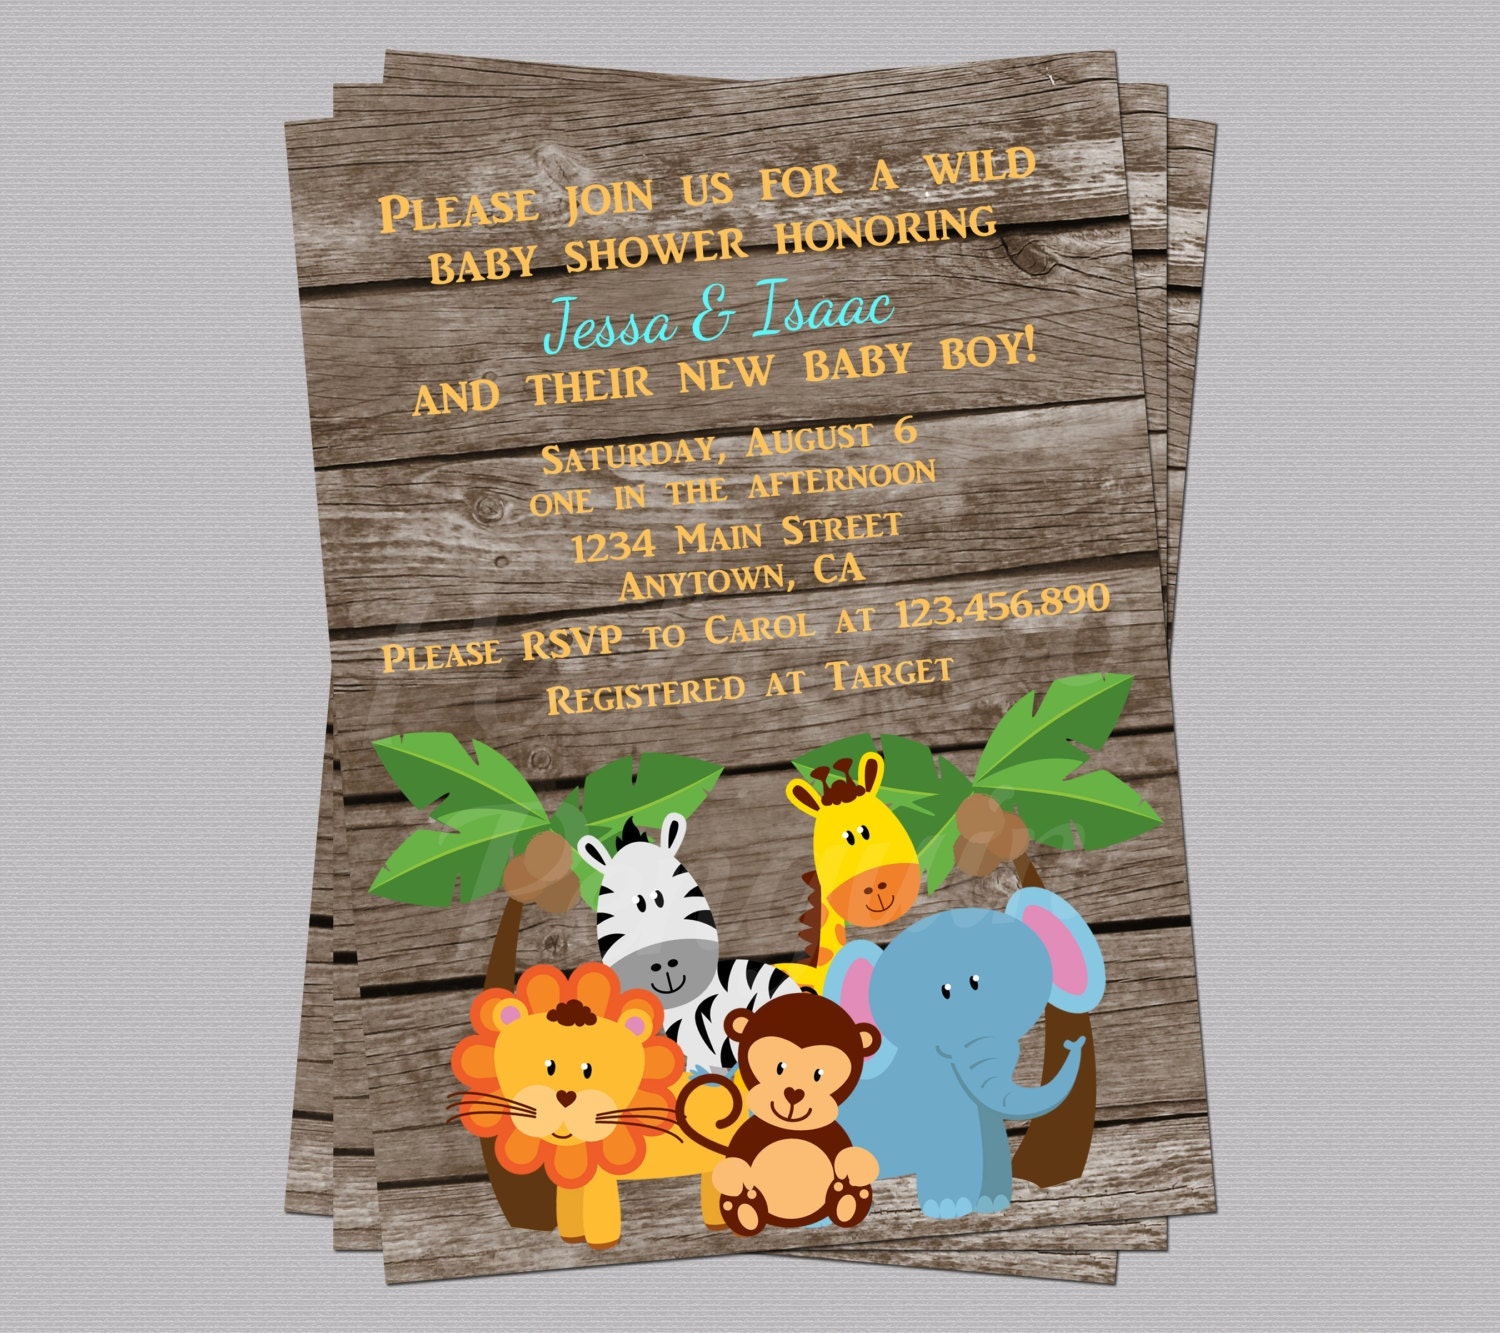 invitations girl shower invites for invitation of baby gallery safari inspirational